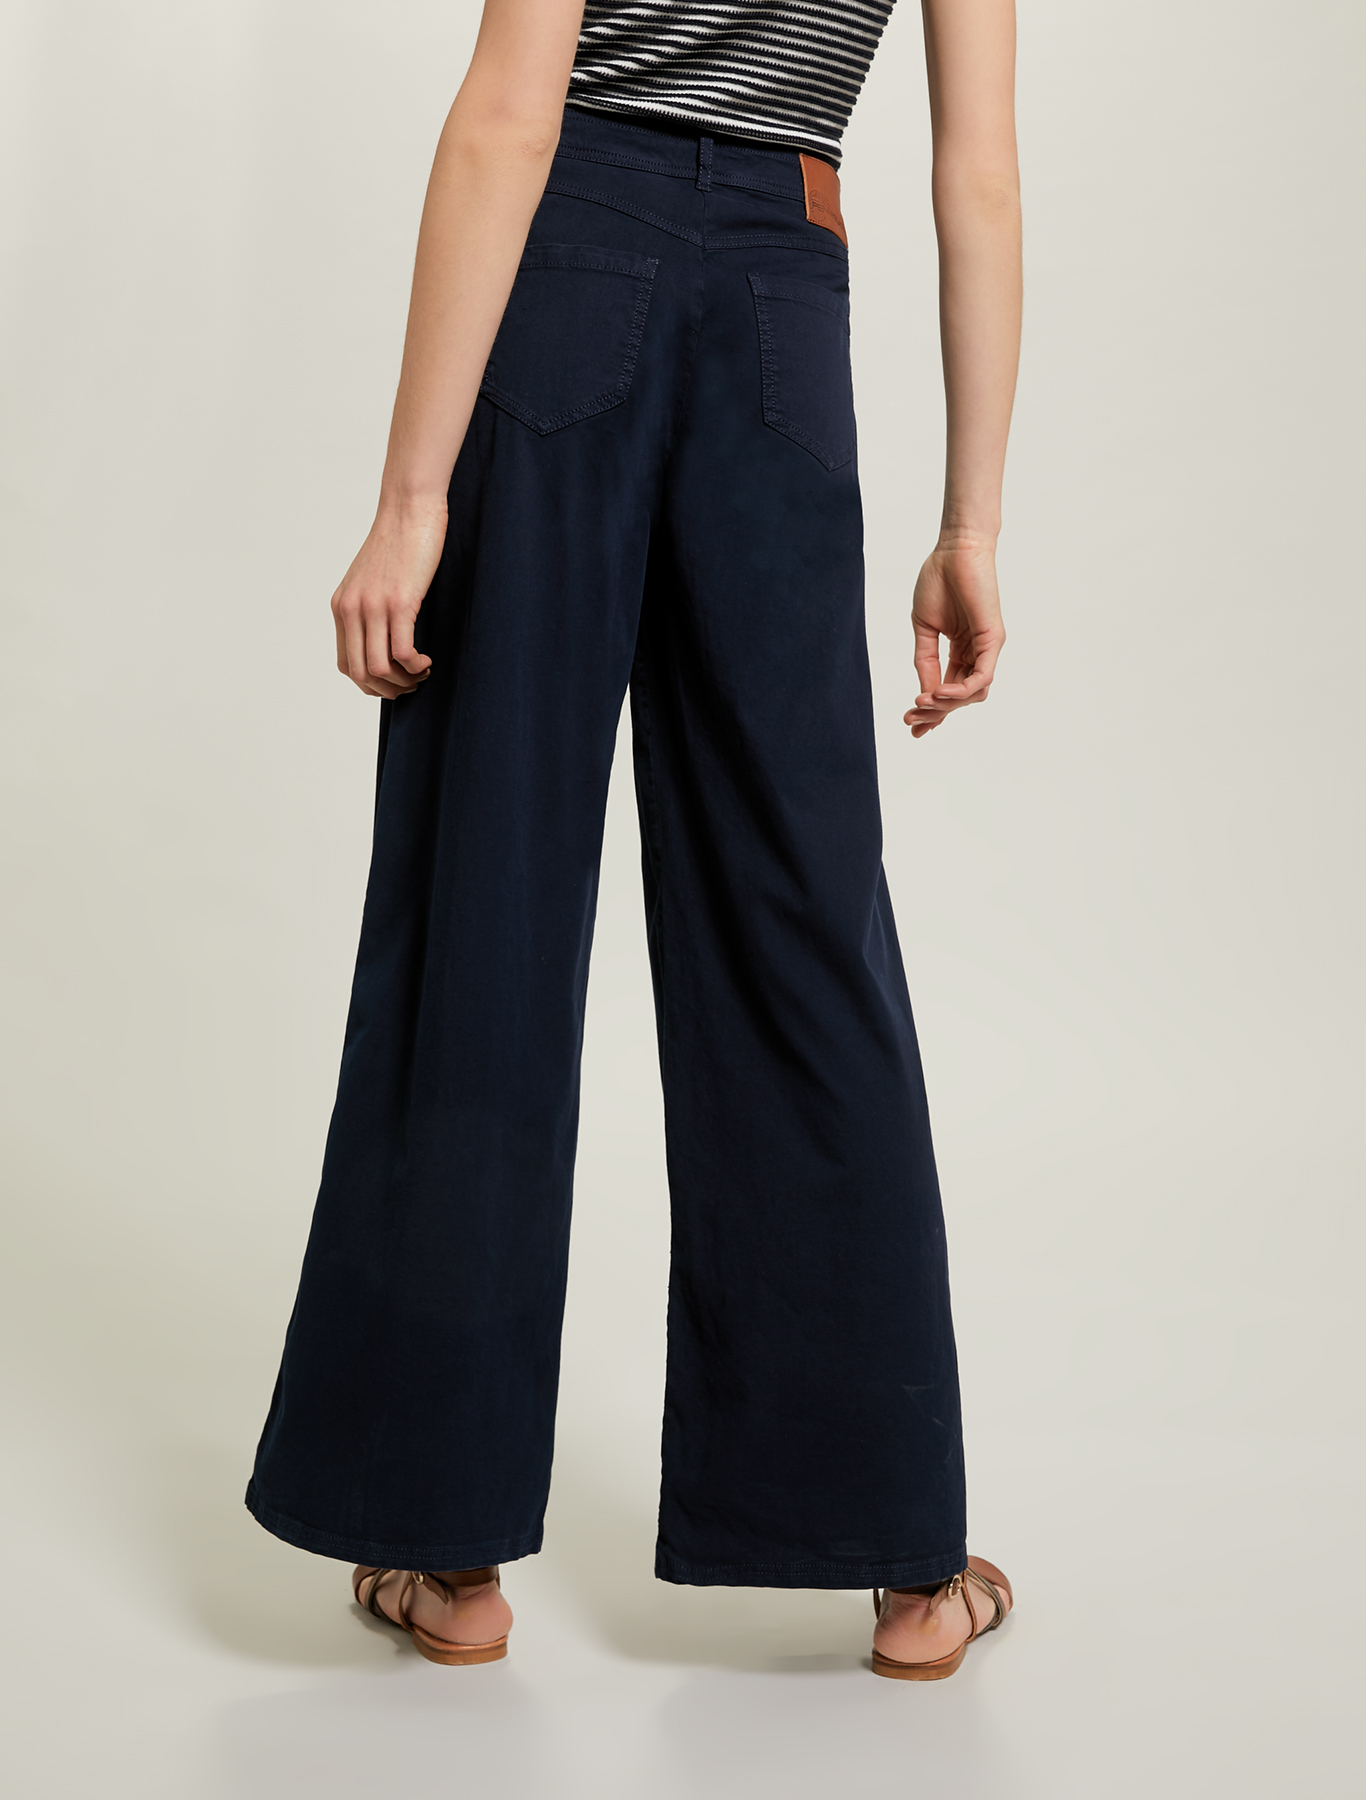 Wide trousers in piqué cotton - navy blue - pennyblack